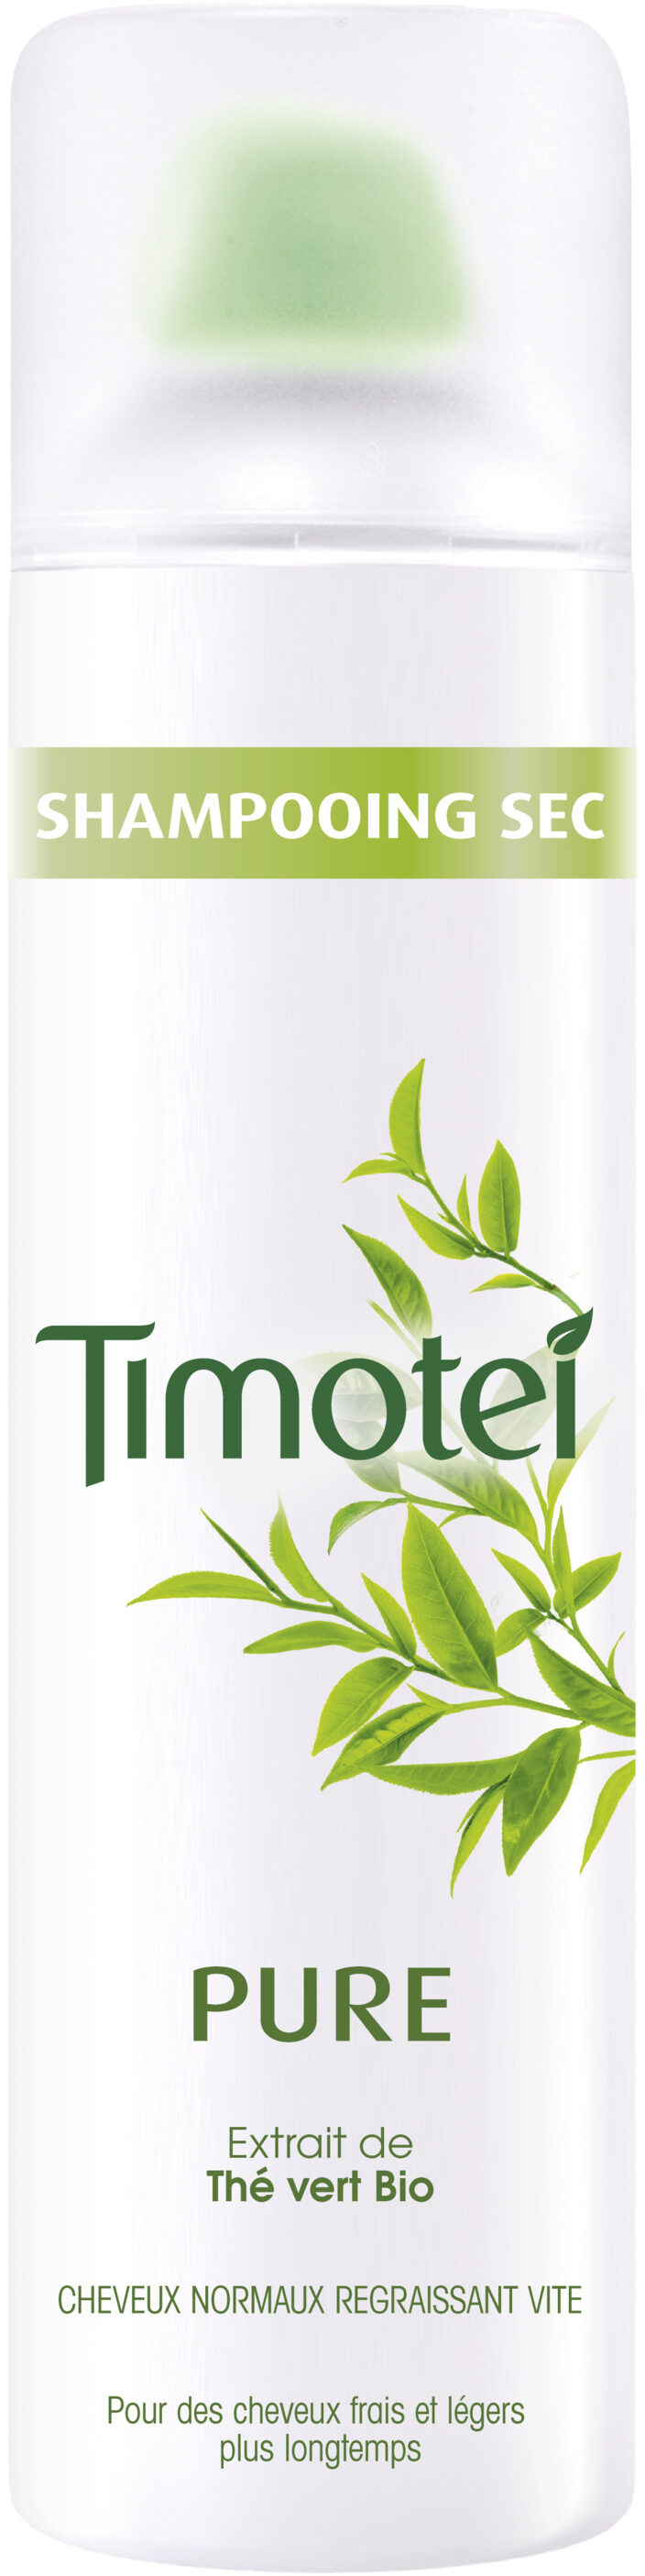 Timotei Shampoing Sec Femme Thé Vert - Product - fr